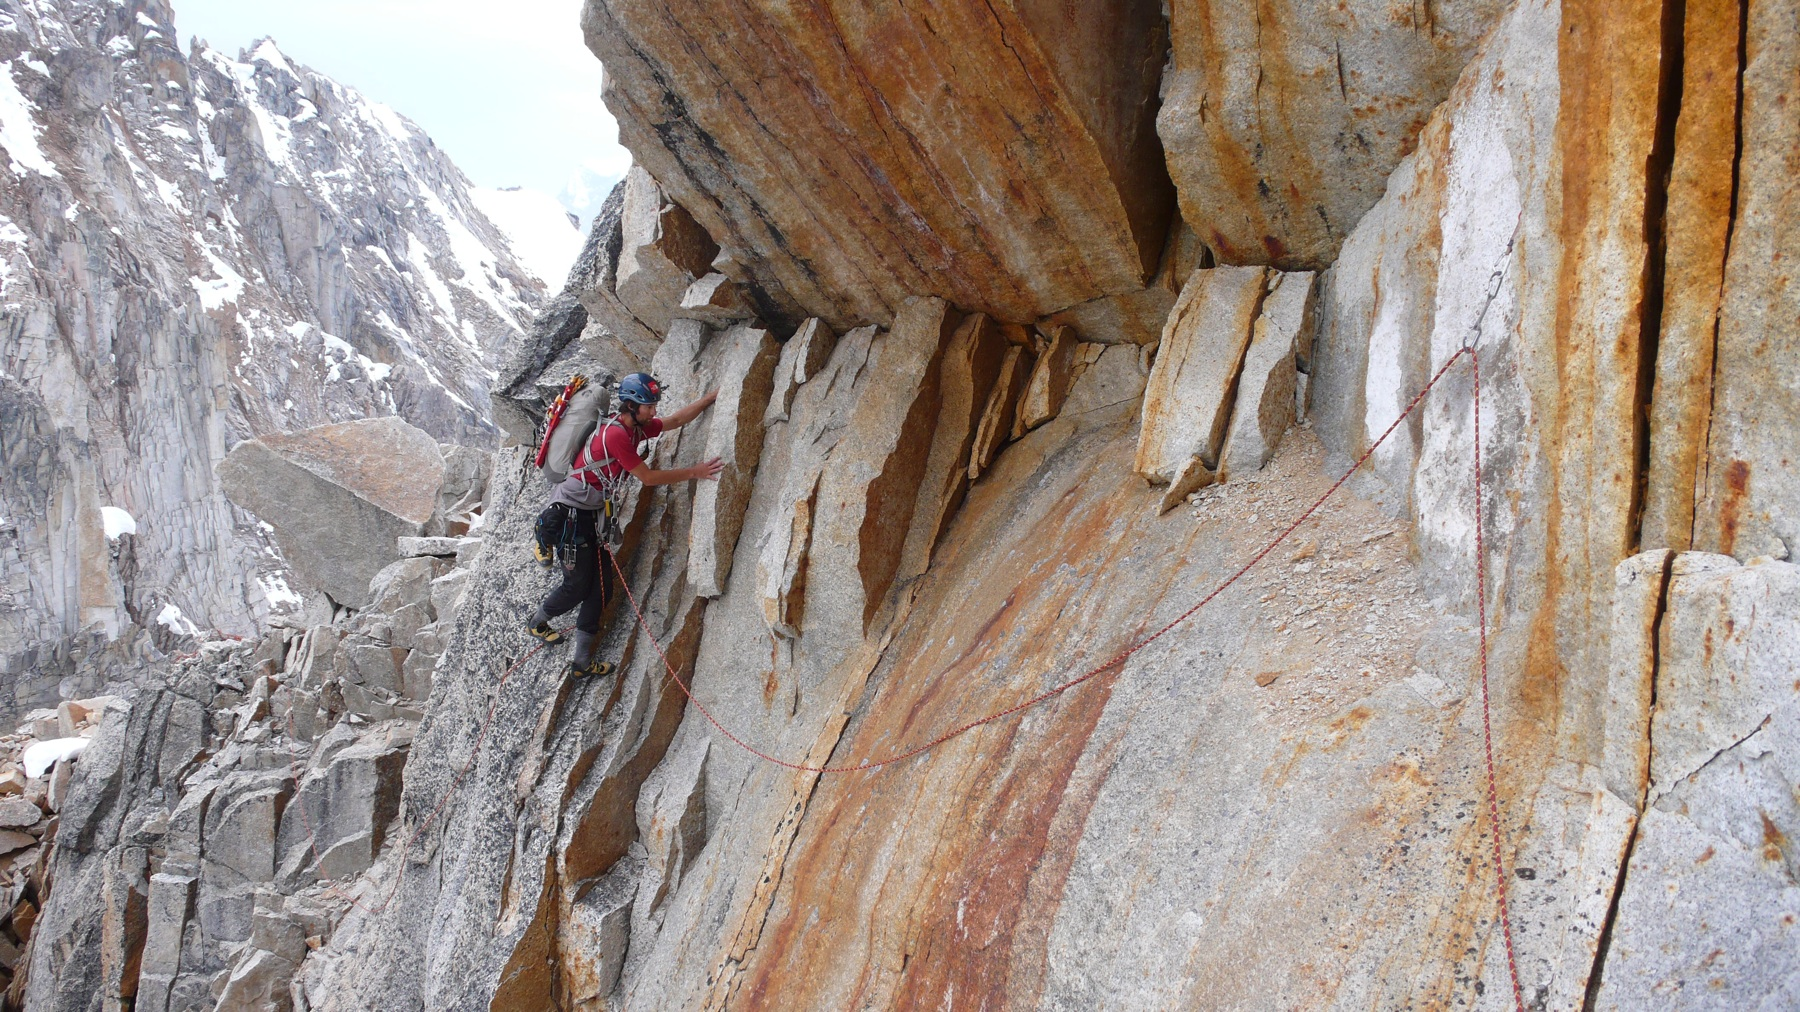 Renan Ozturk on the initial section of the new route on Sugar Tooth.